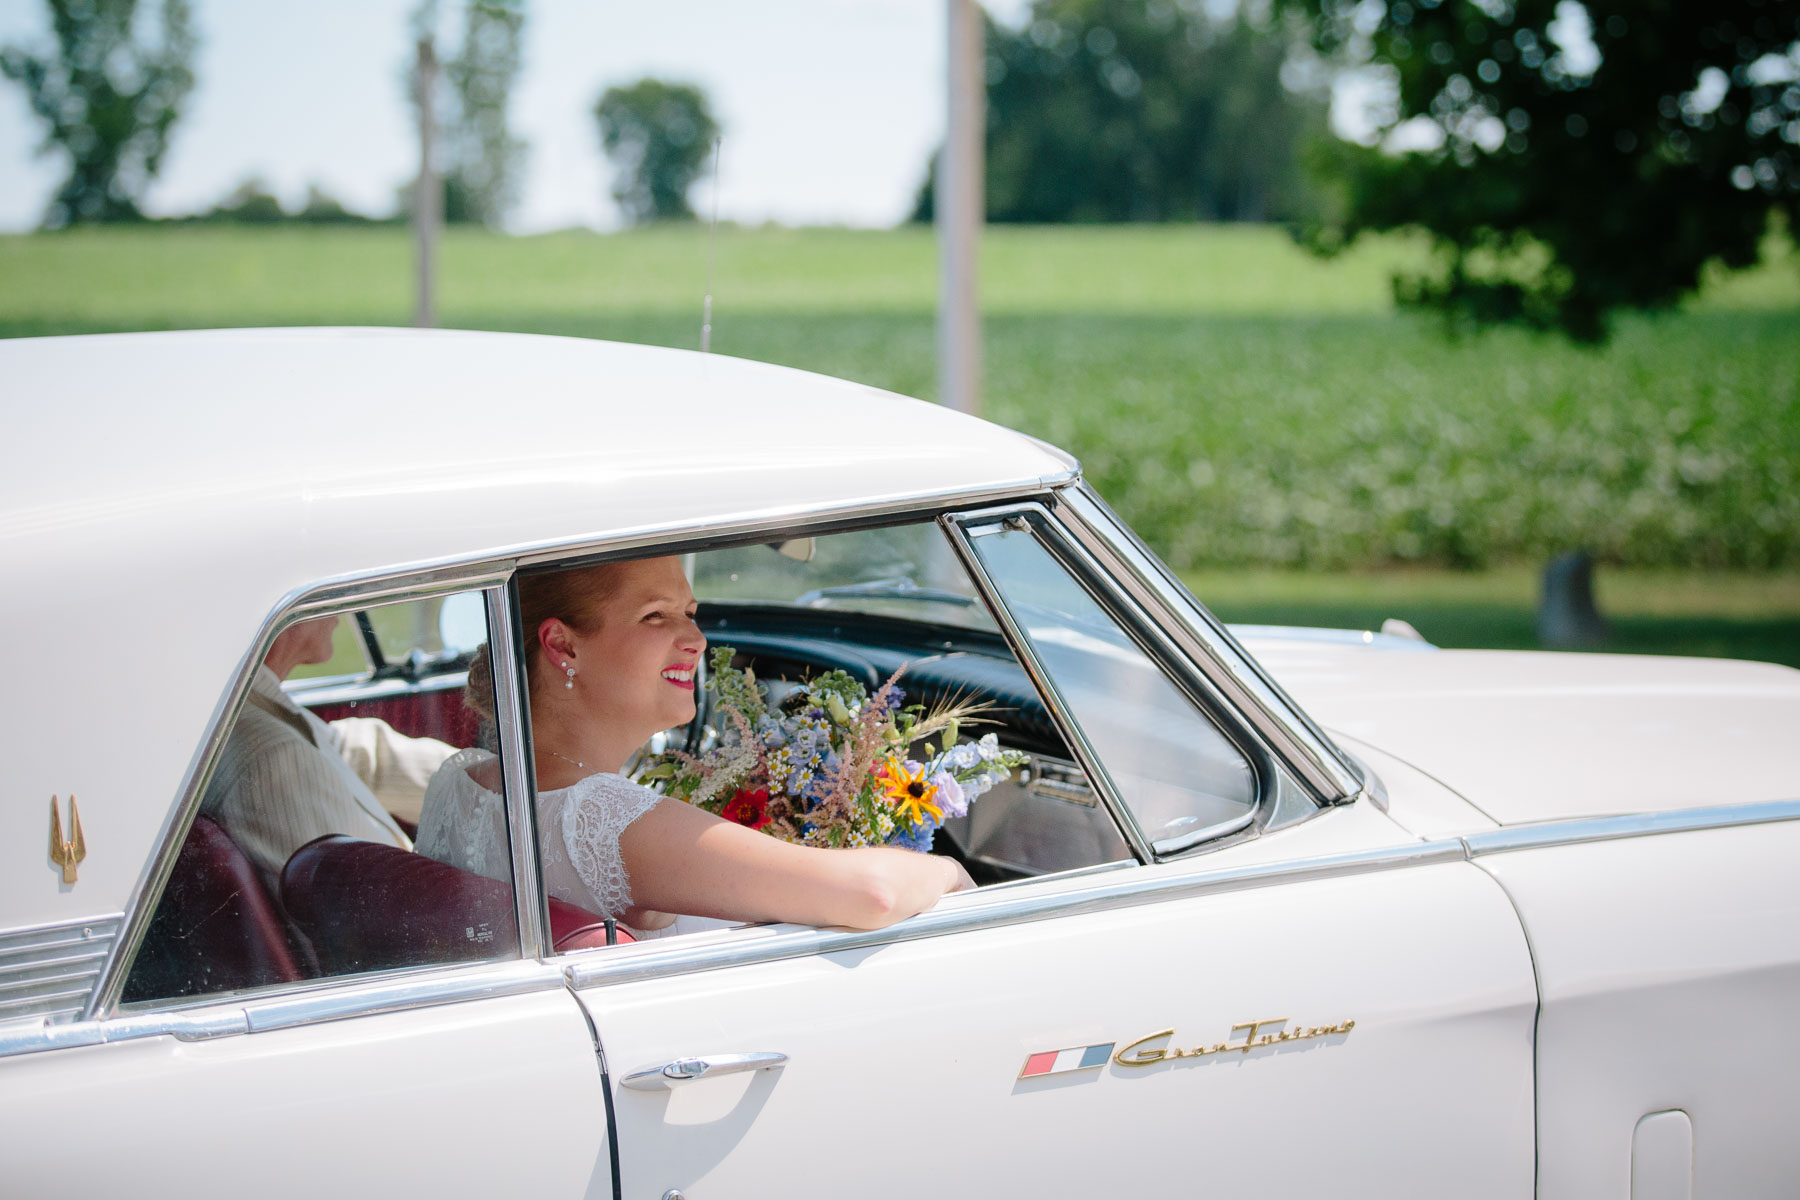 The bride looks out from the 1963 Studebaker Gran Turismo as it pulls up to the church in this rural farm wedding.